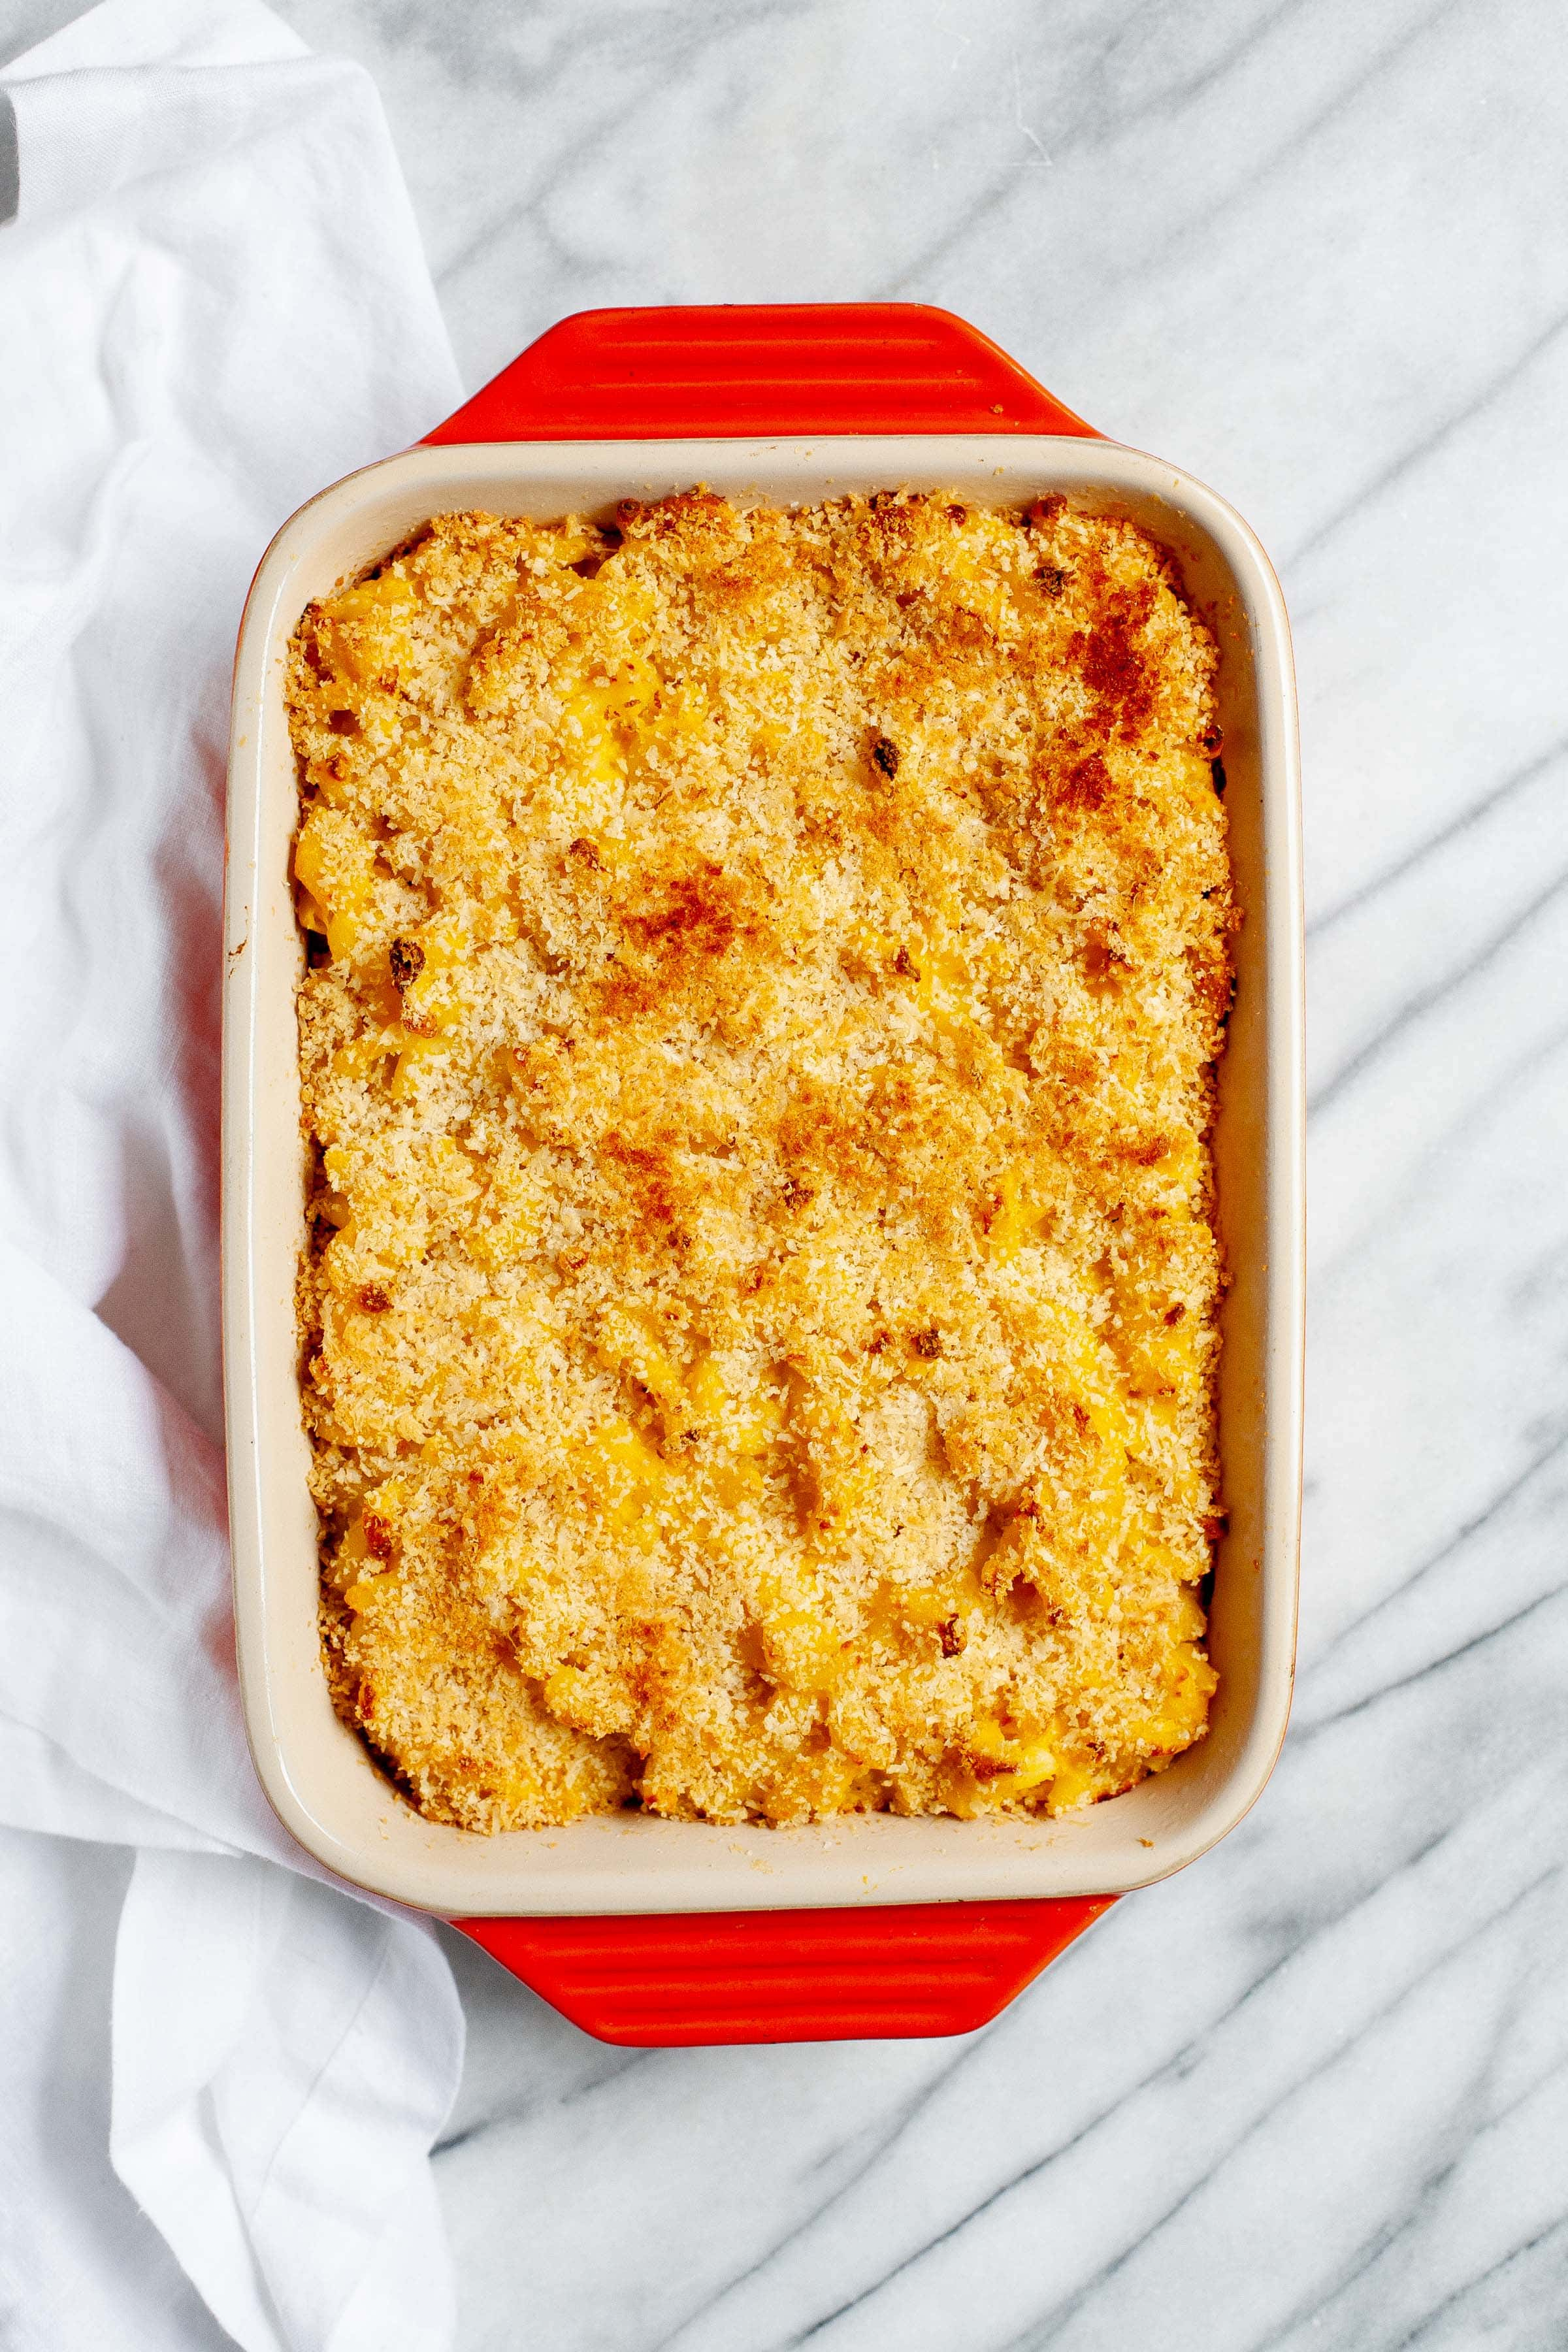 Beer and Butternut Squash Macaroni and Cheese in a red baking pan